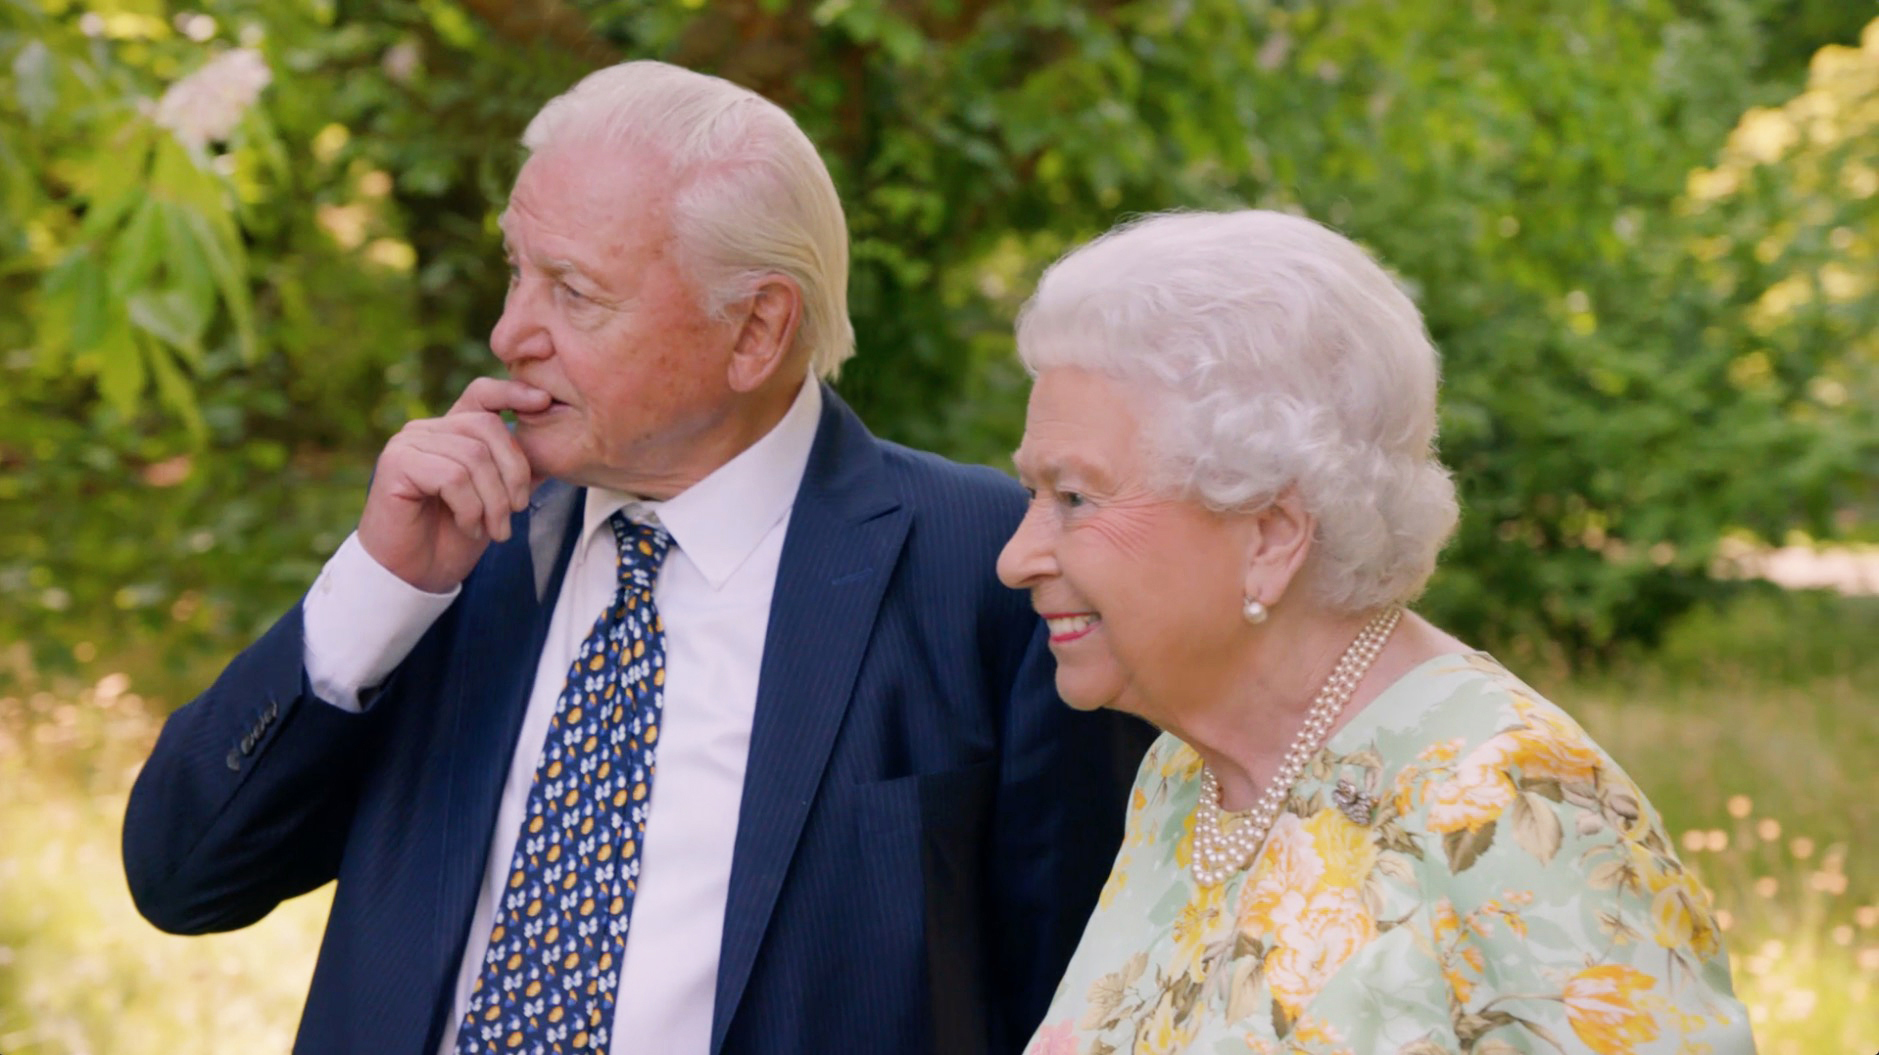 Sir David Attenborough upset by question about the Queen